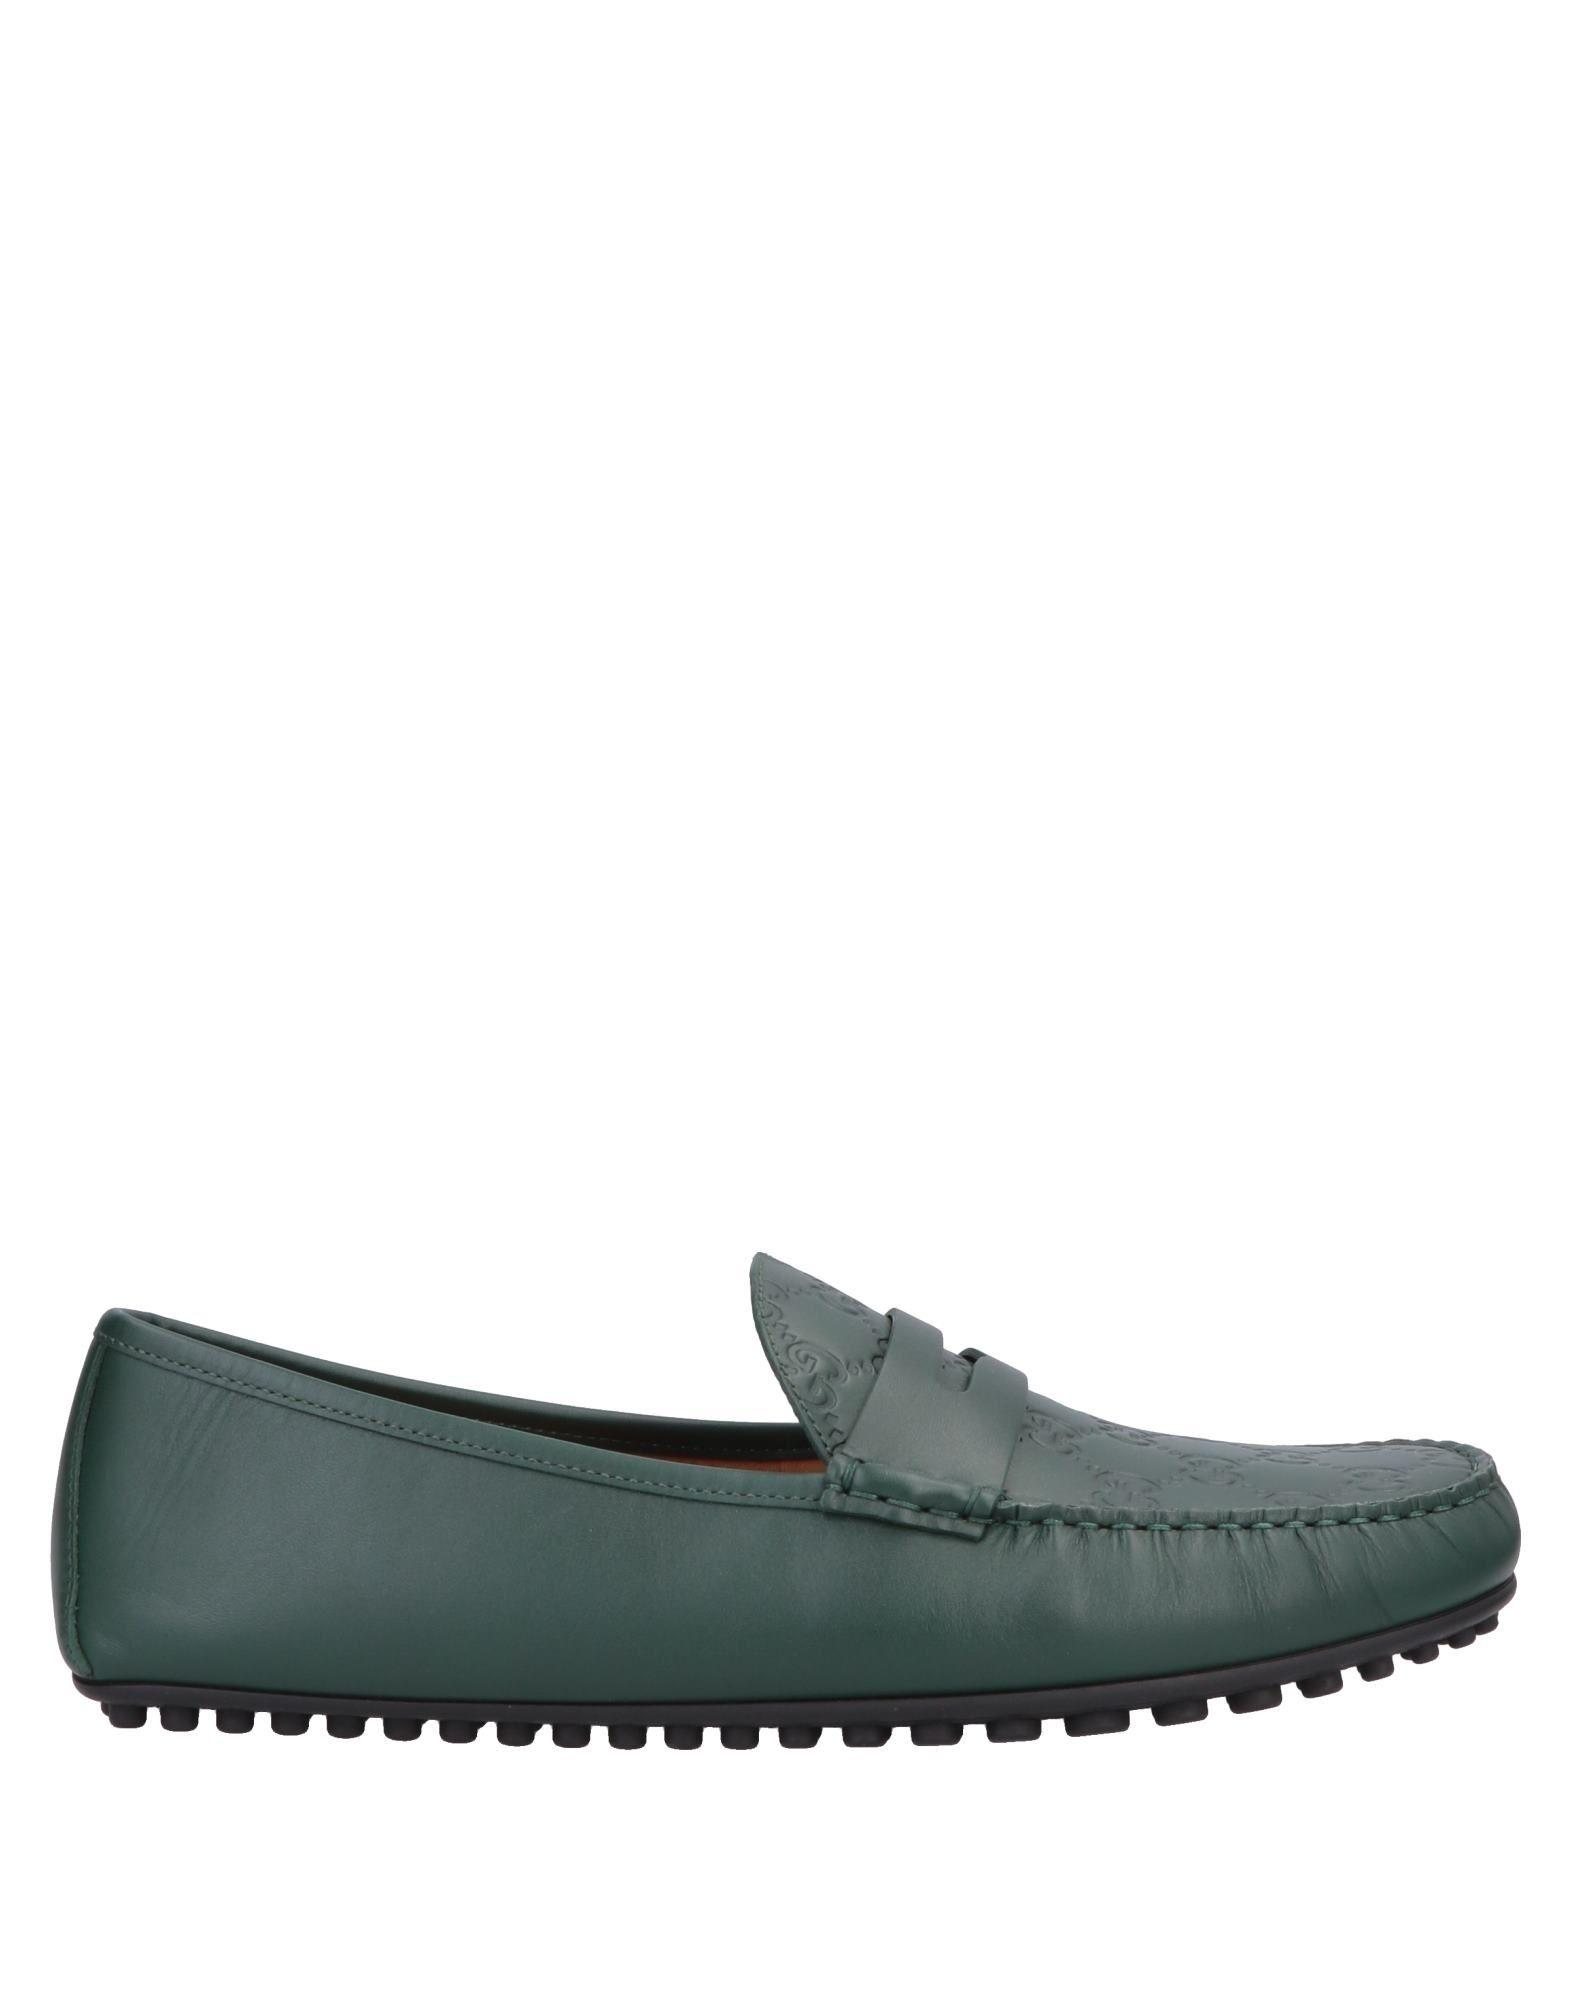 8fb52037e10 Lyst - Gucci Loafer in Green for Men